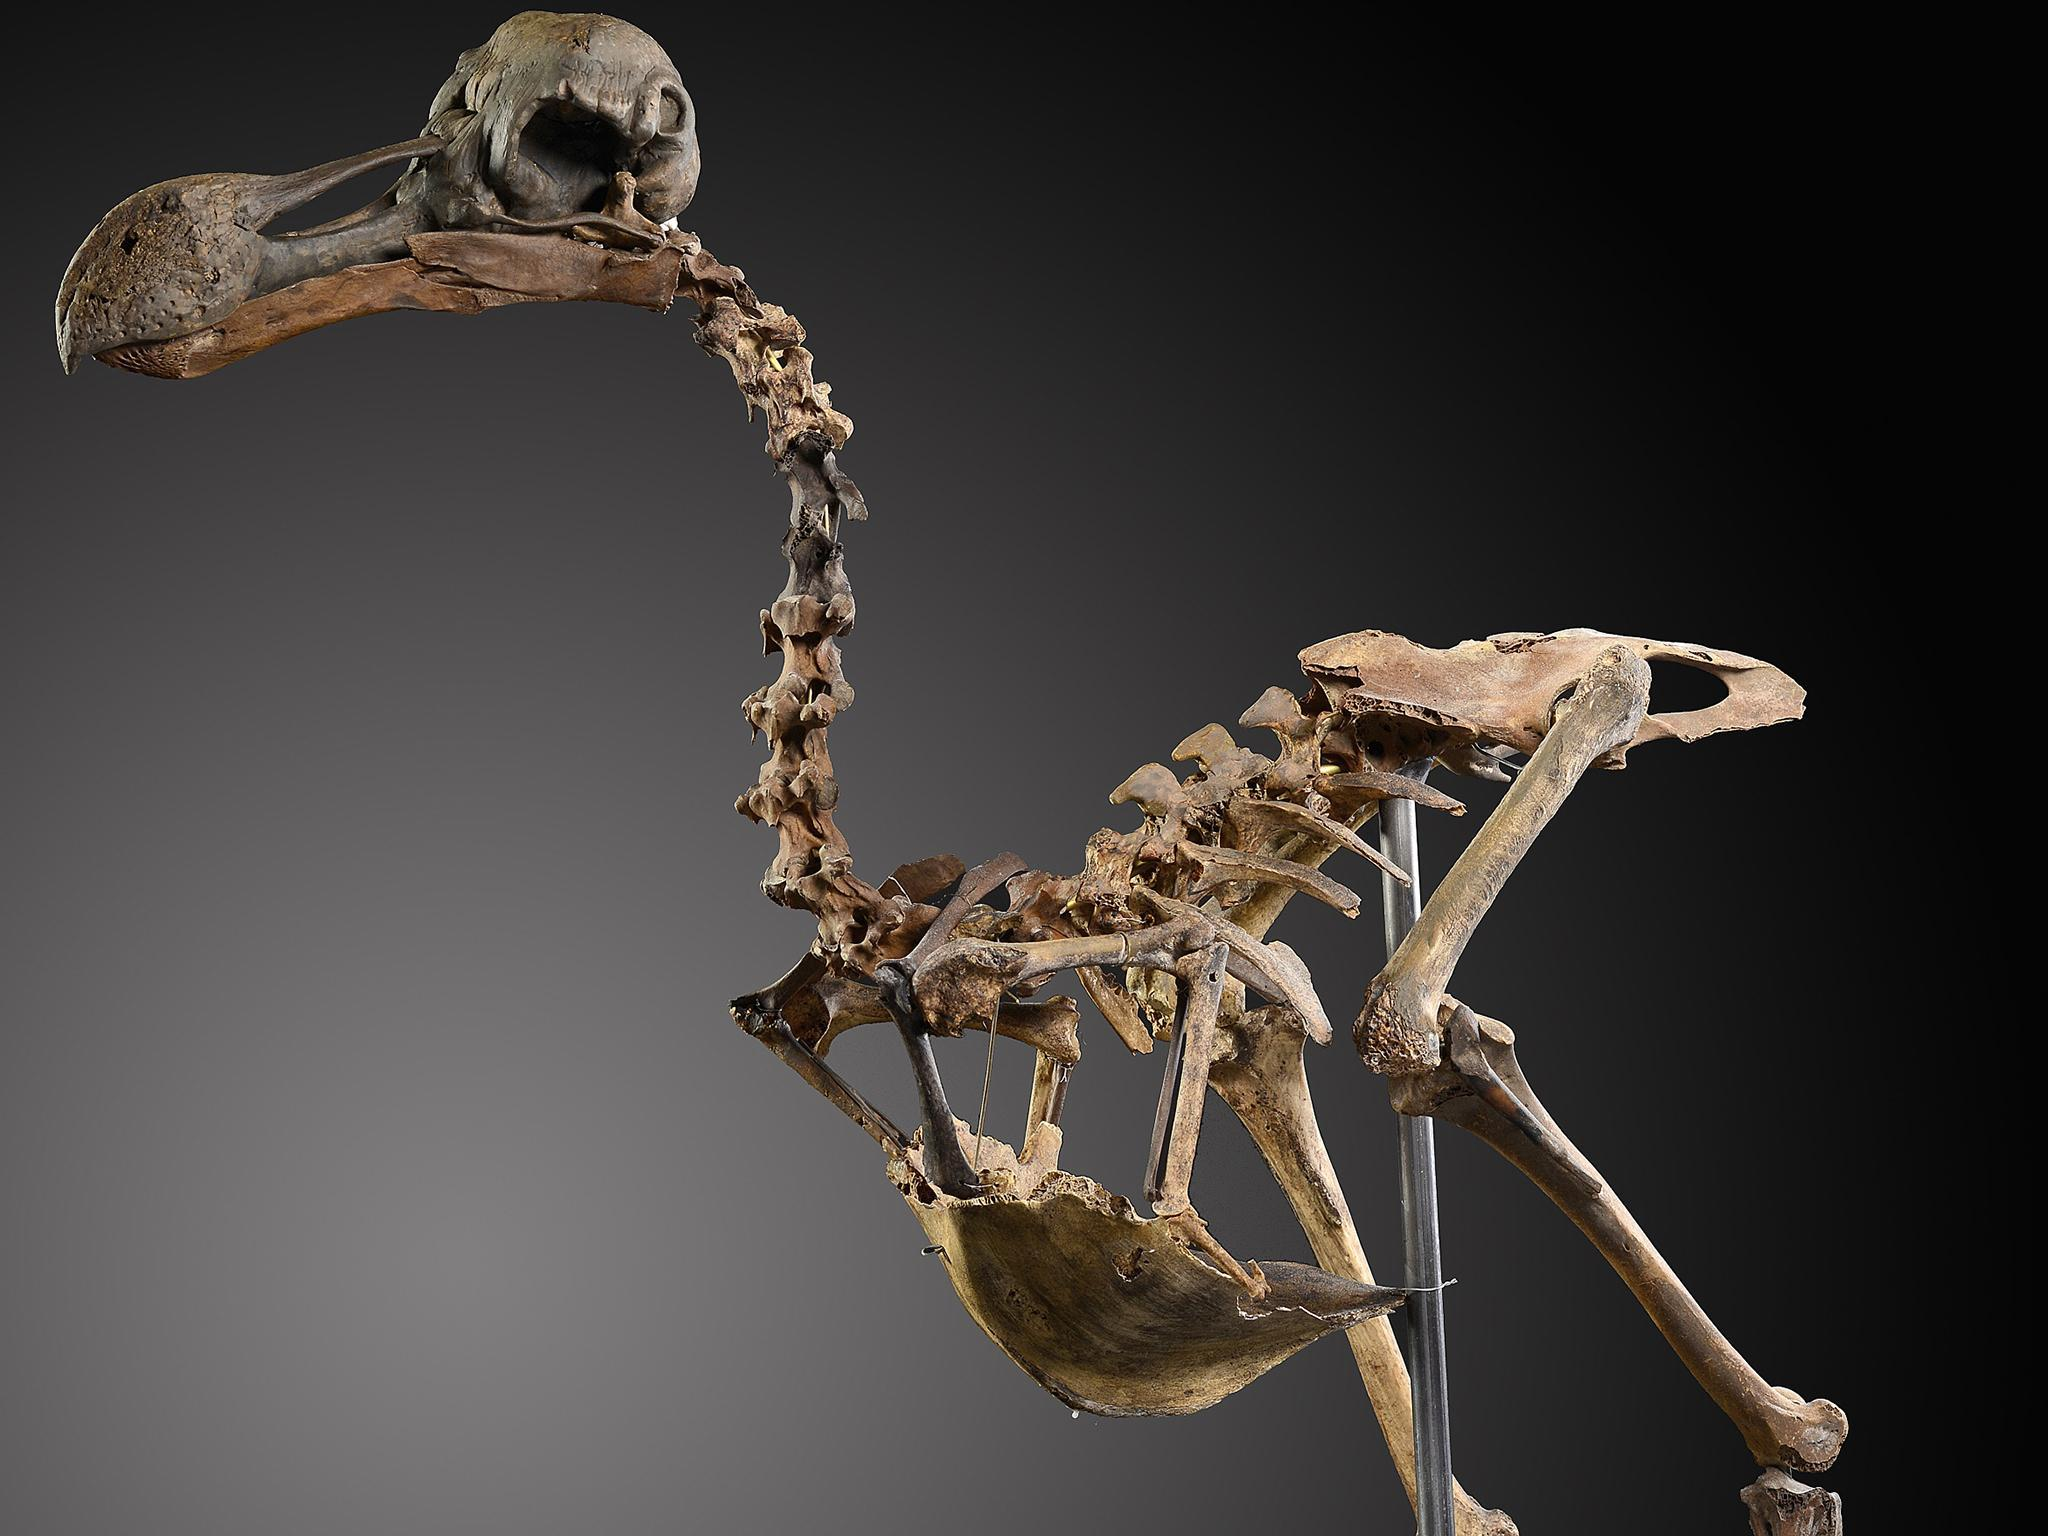 First Dodo Skeleton To Come Up For Sale In 100 Years To Be Auctioned